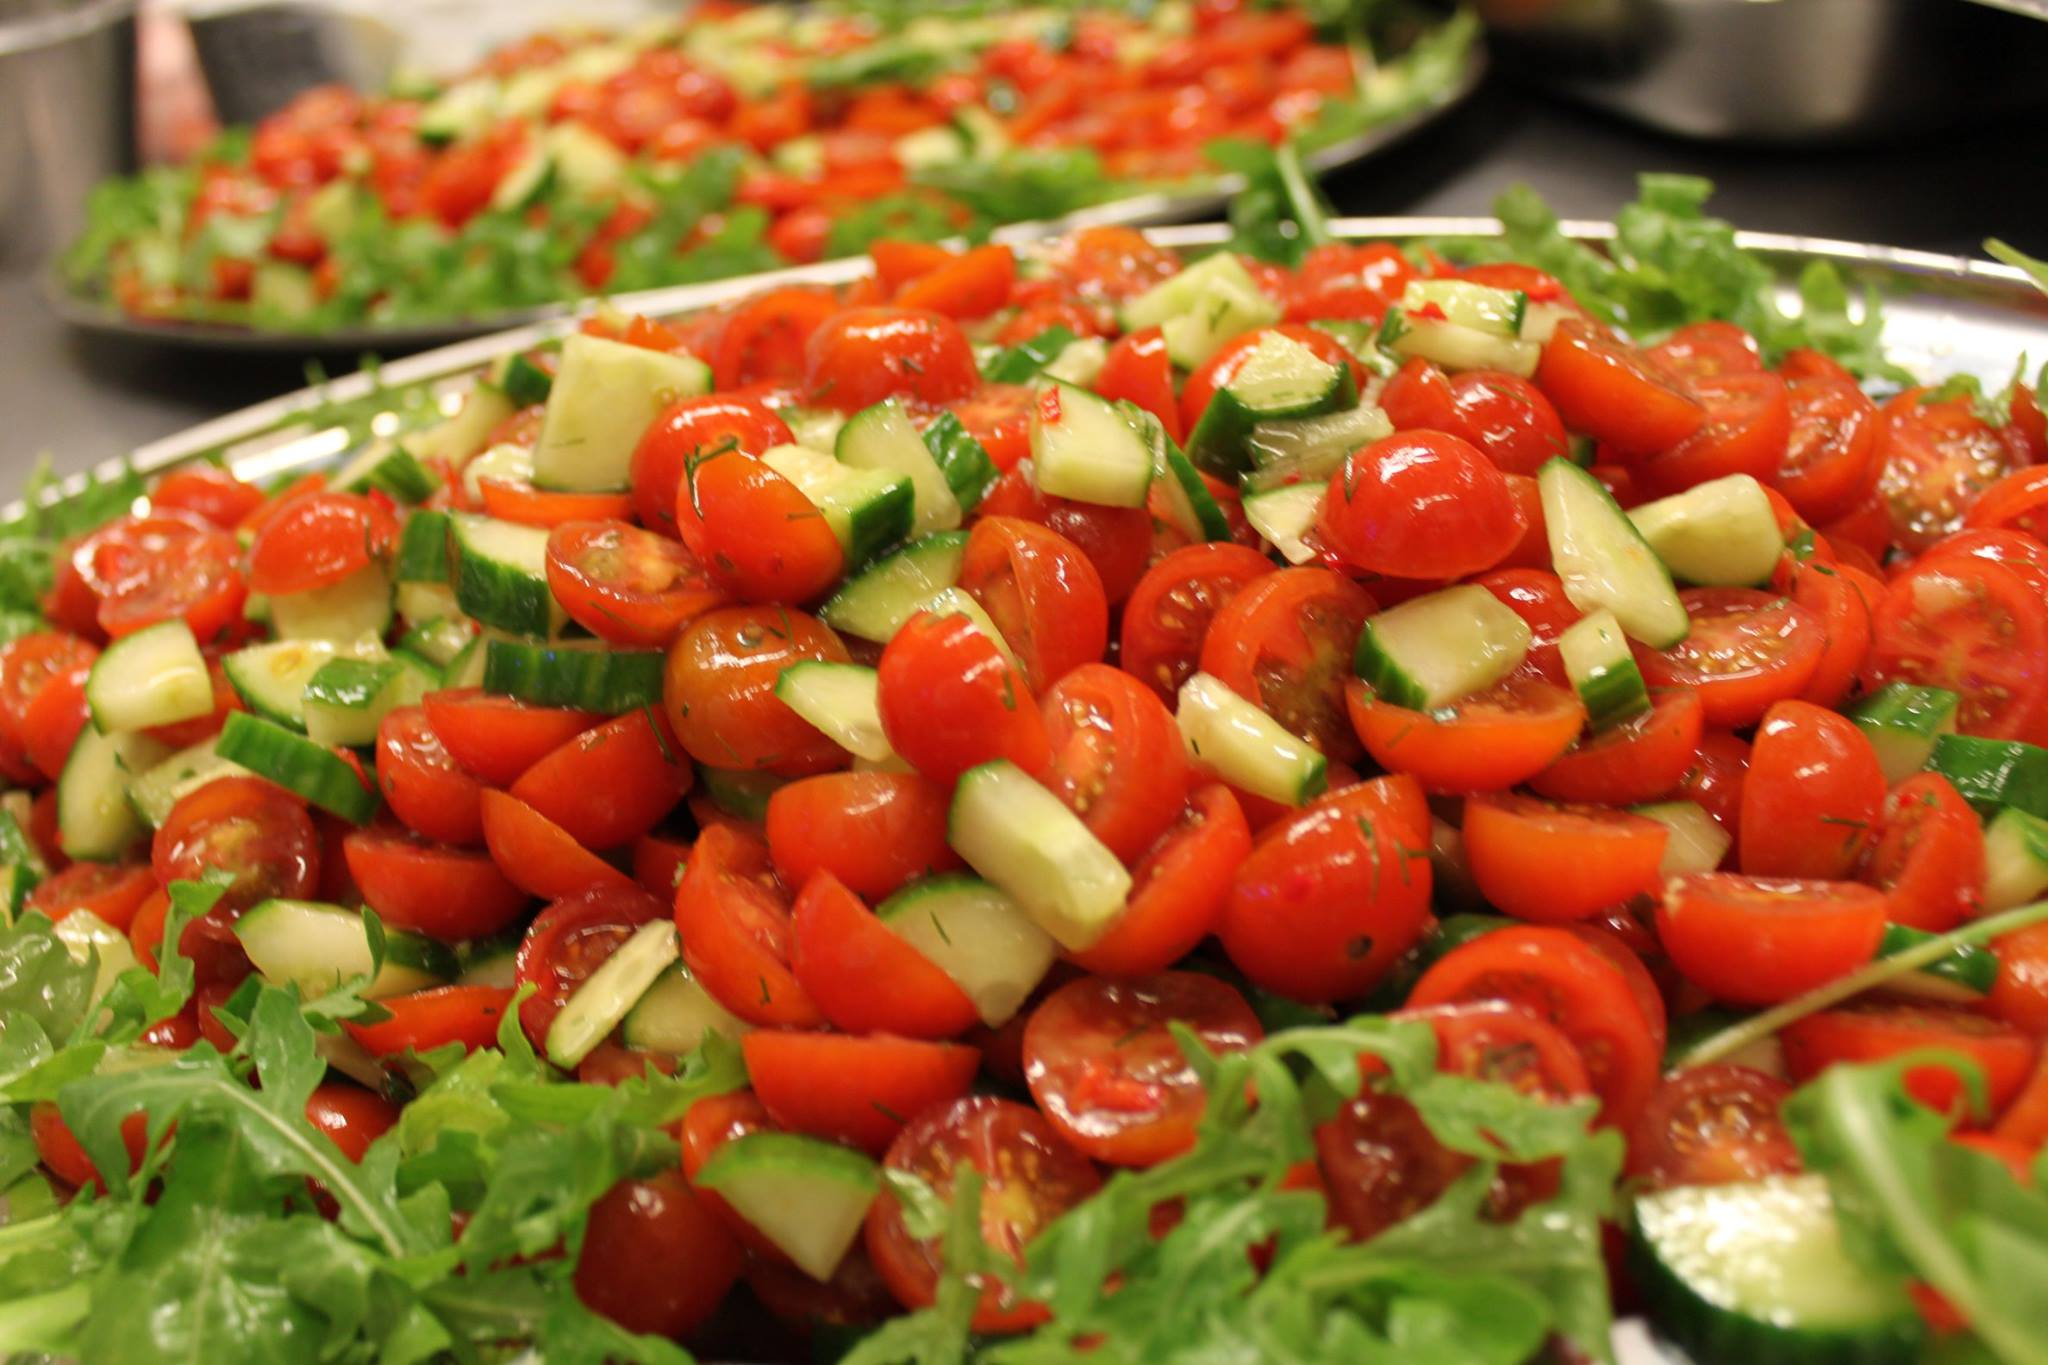 Cherry tomatoes diced cucumbers in a dill dreessing